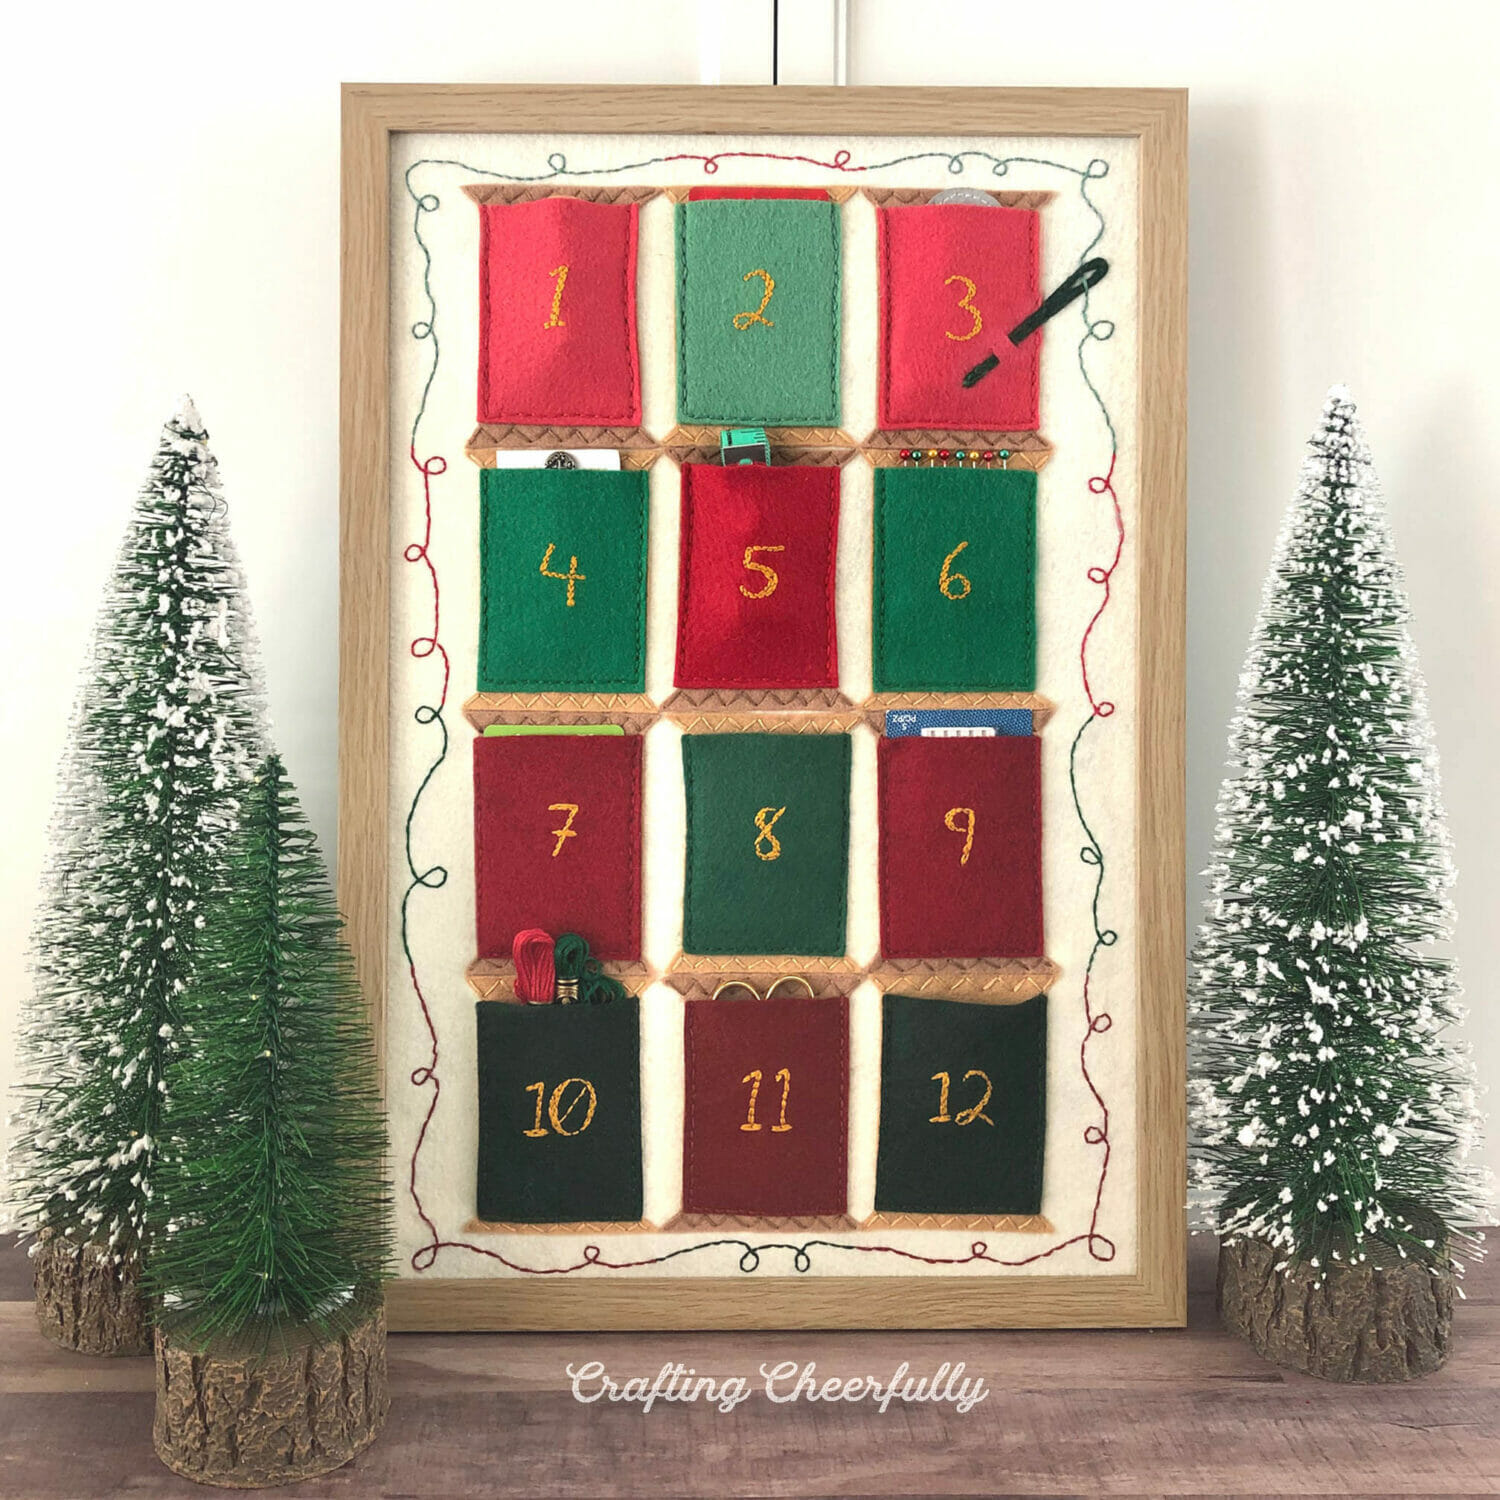 12 Spools of Christmas Felt Embroidery Pattern